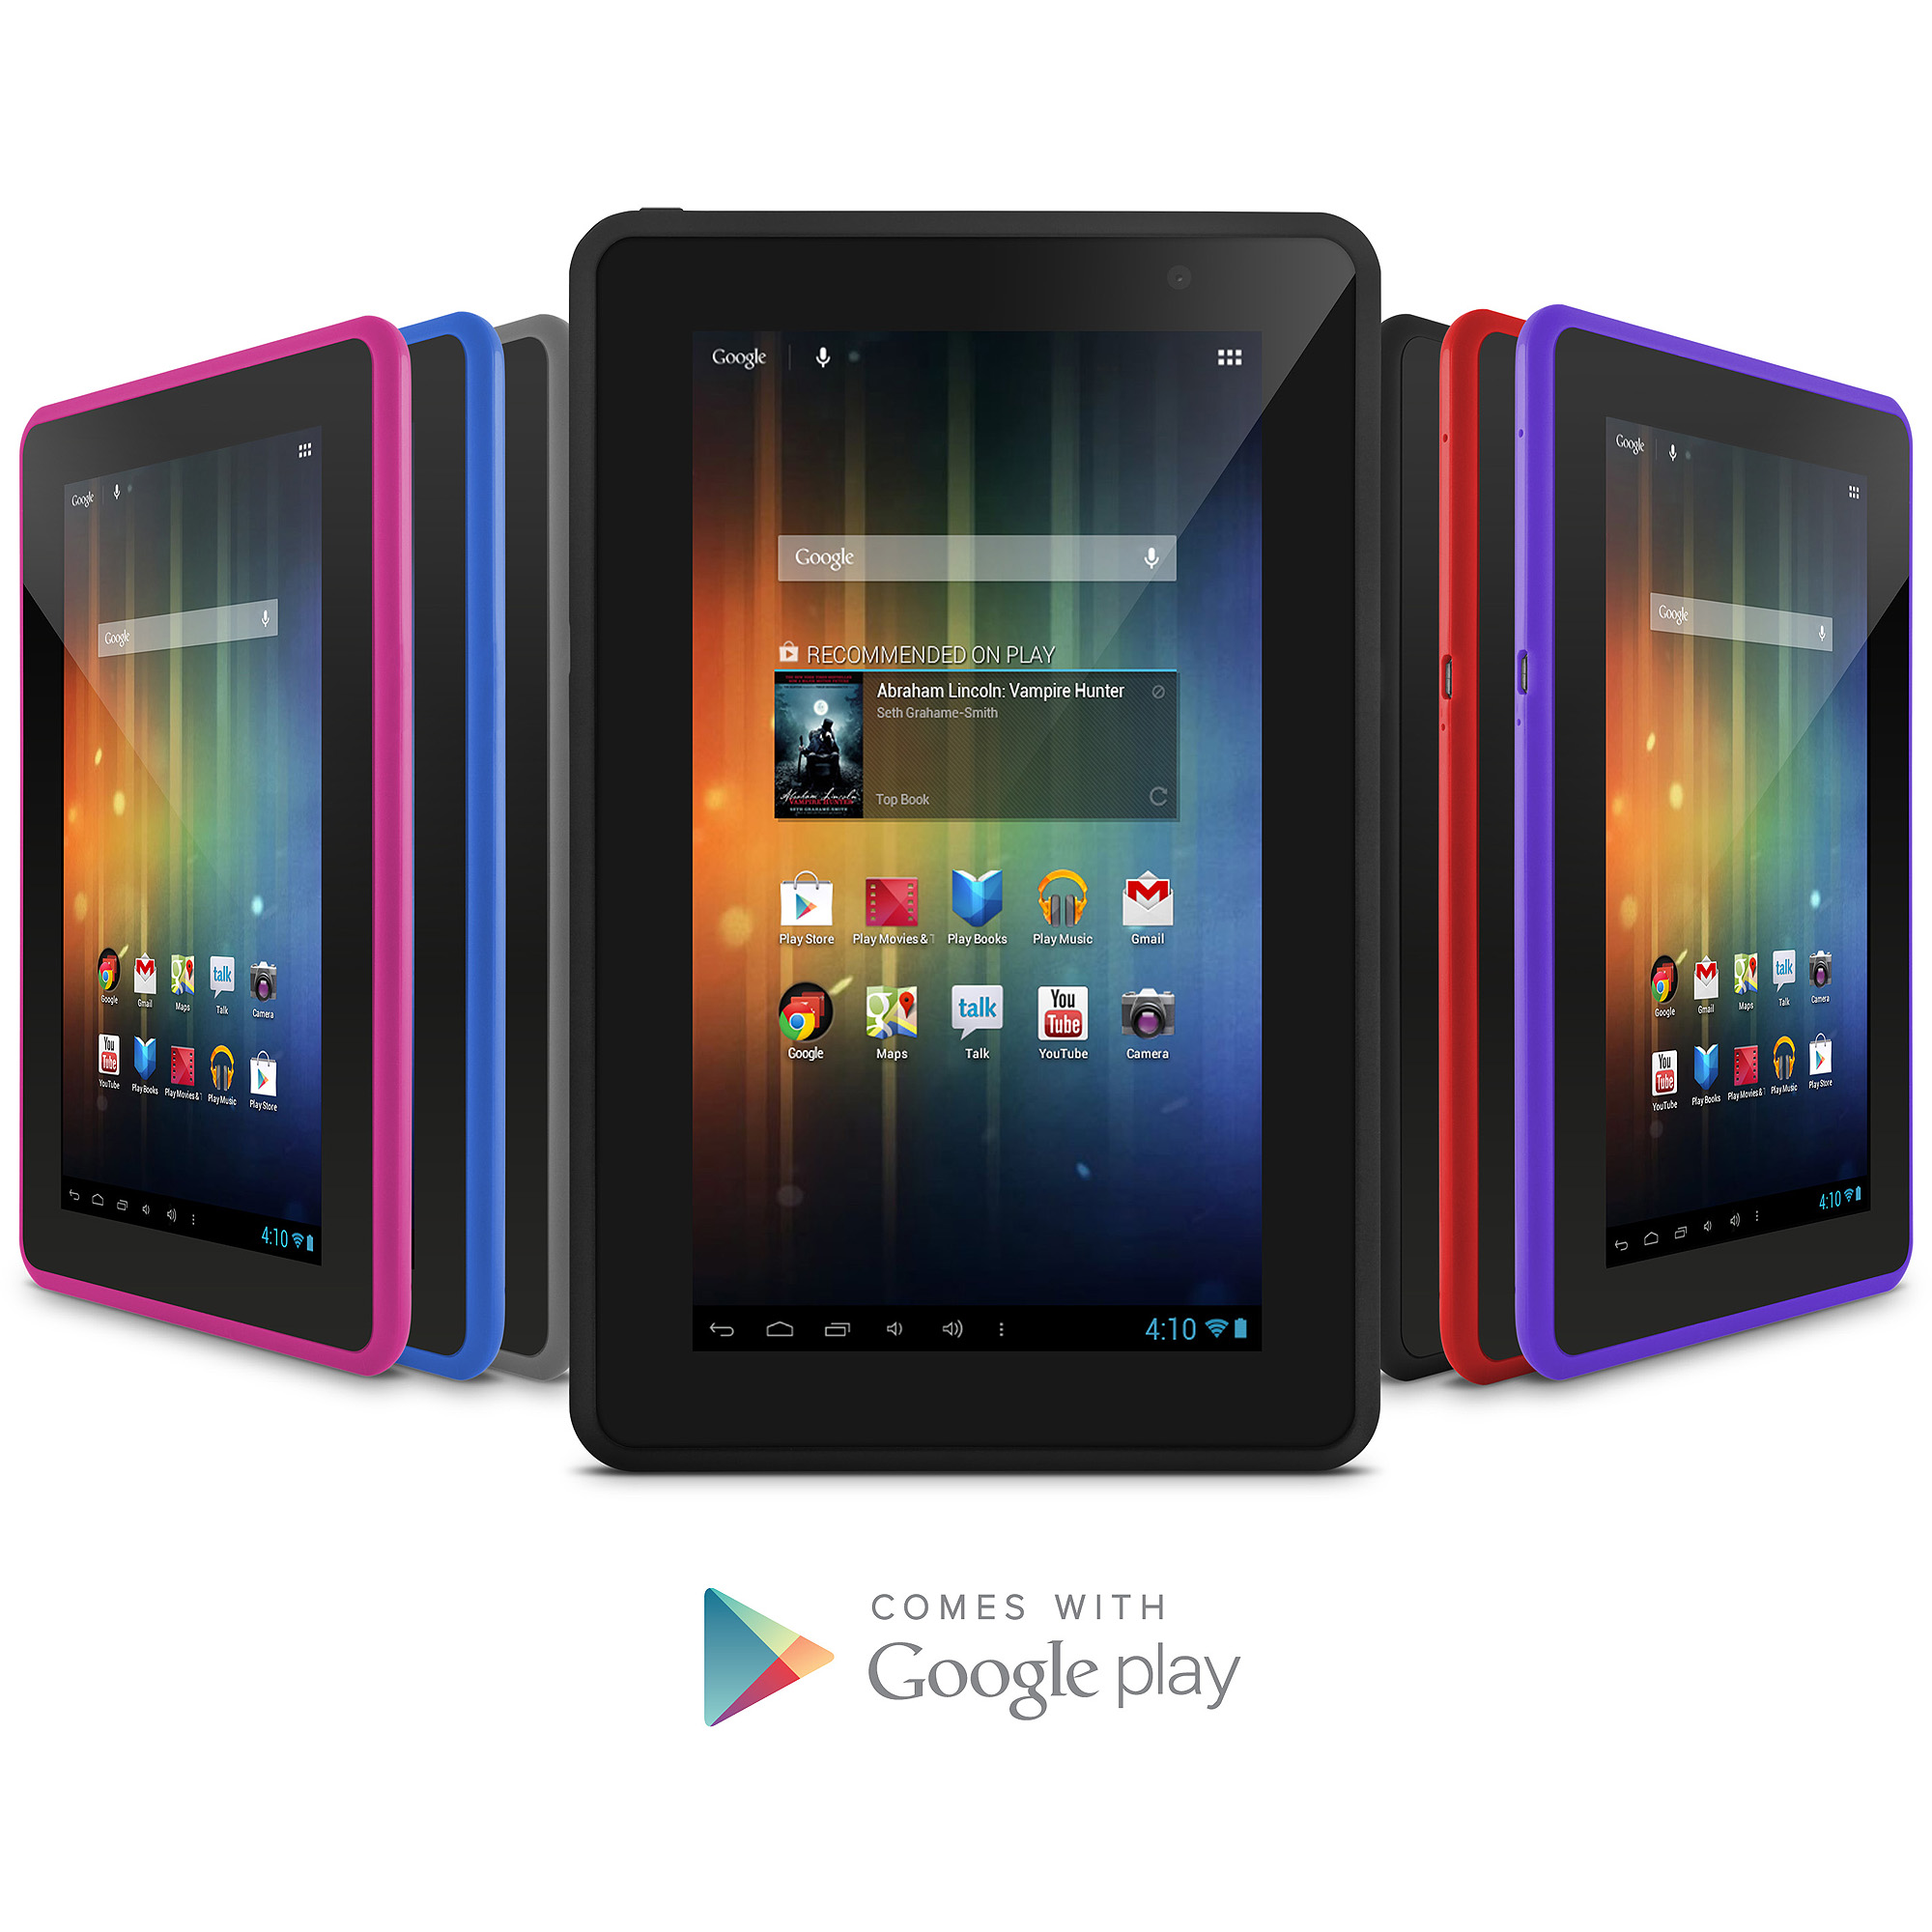 "Ematic 7"" Tablet with 4GB Memory and Google Mobile Services"